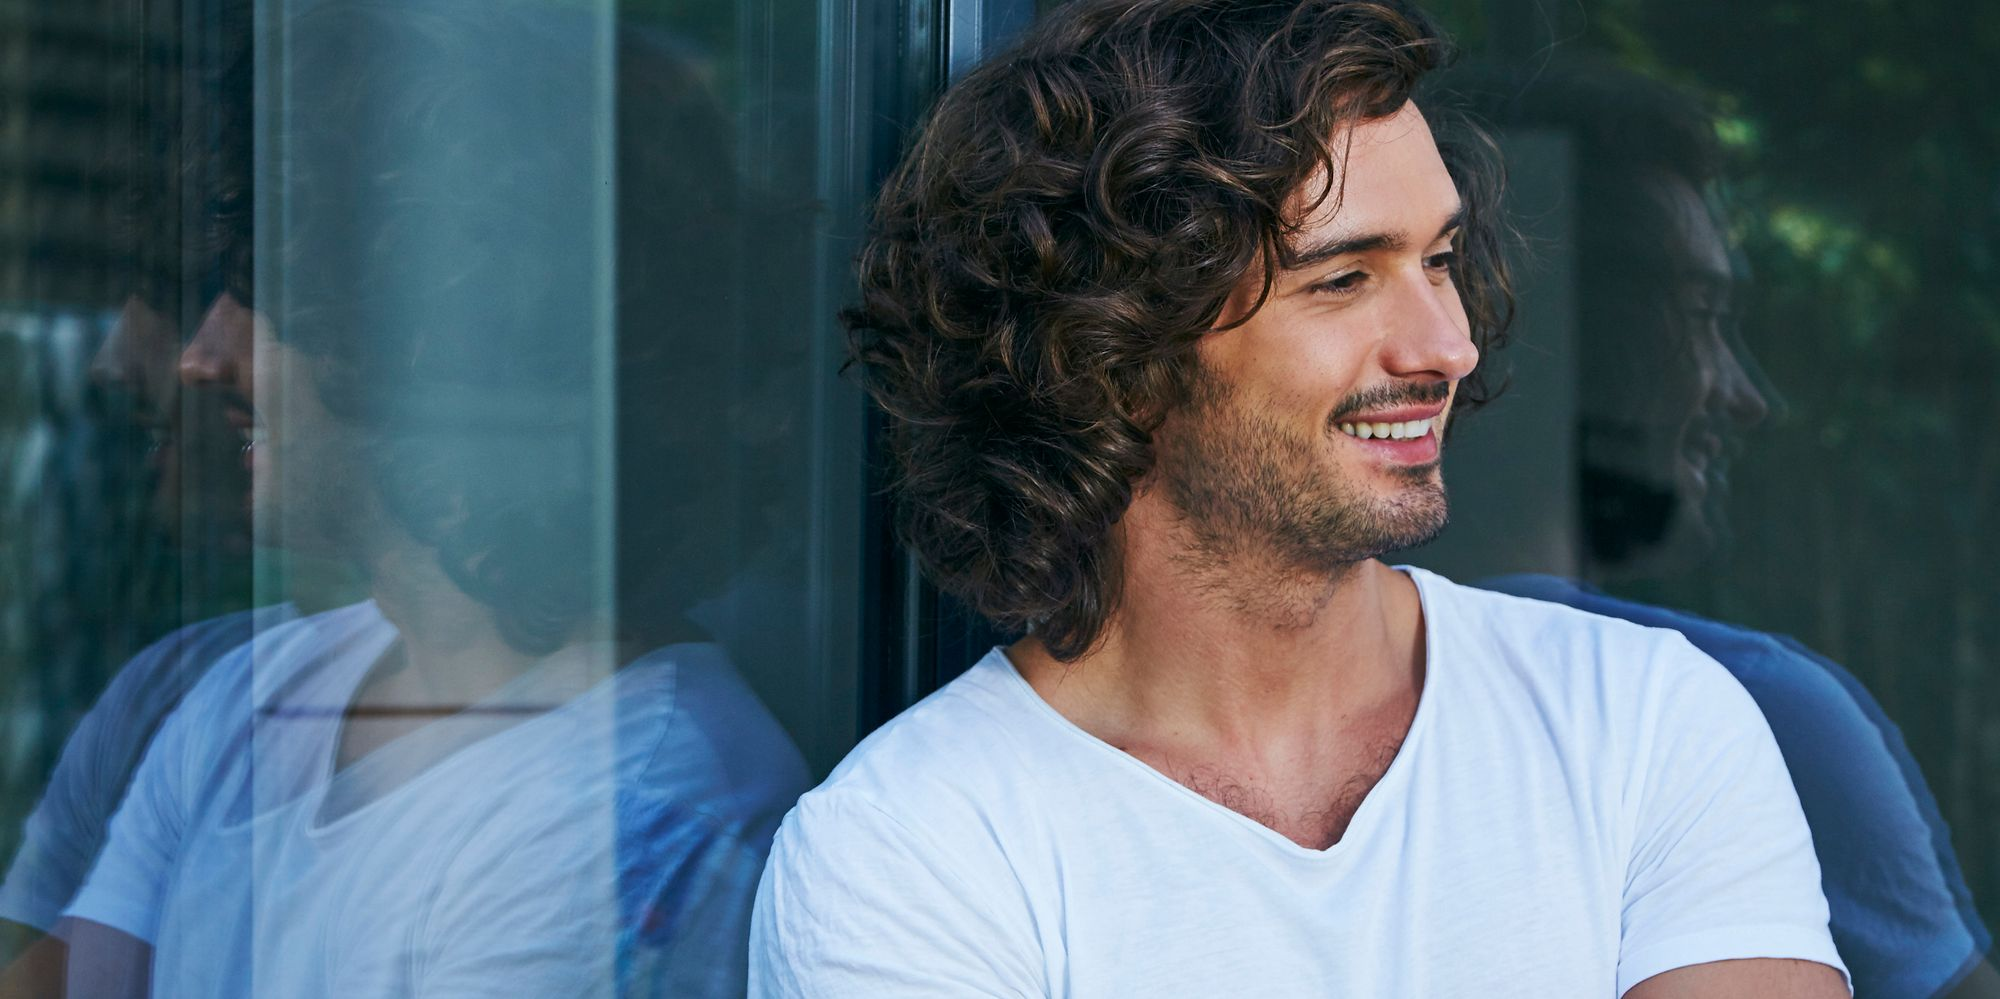 'joe Wicks: The Body Coach' Shares Top Weight Loss Tips In New Channel 4  Show  Huffpost Uk